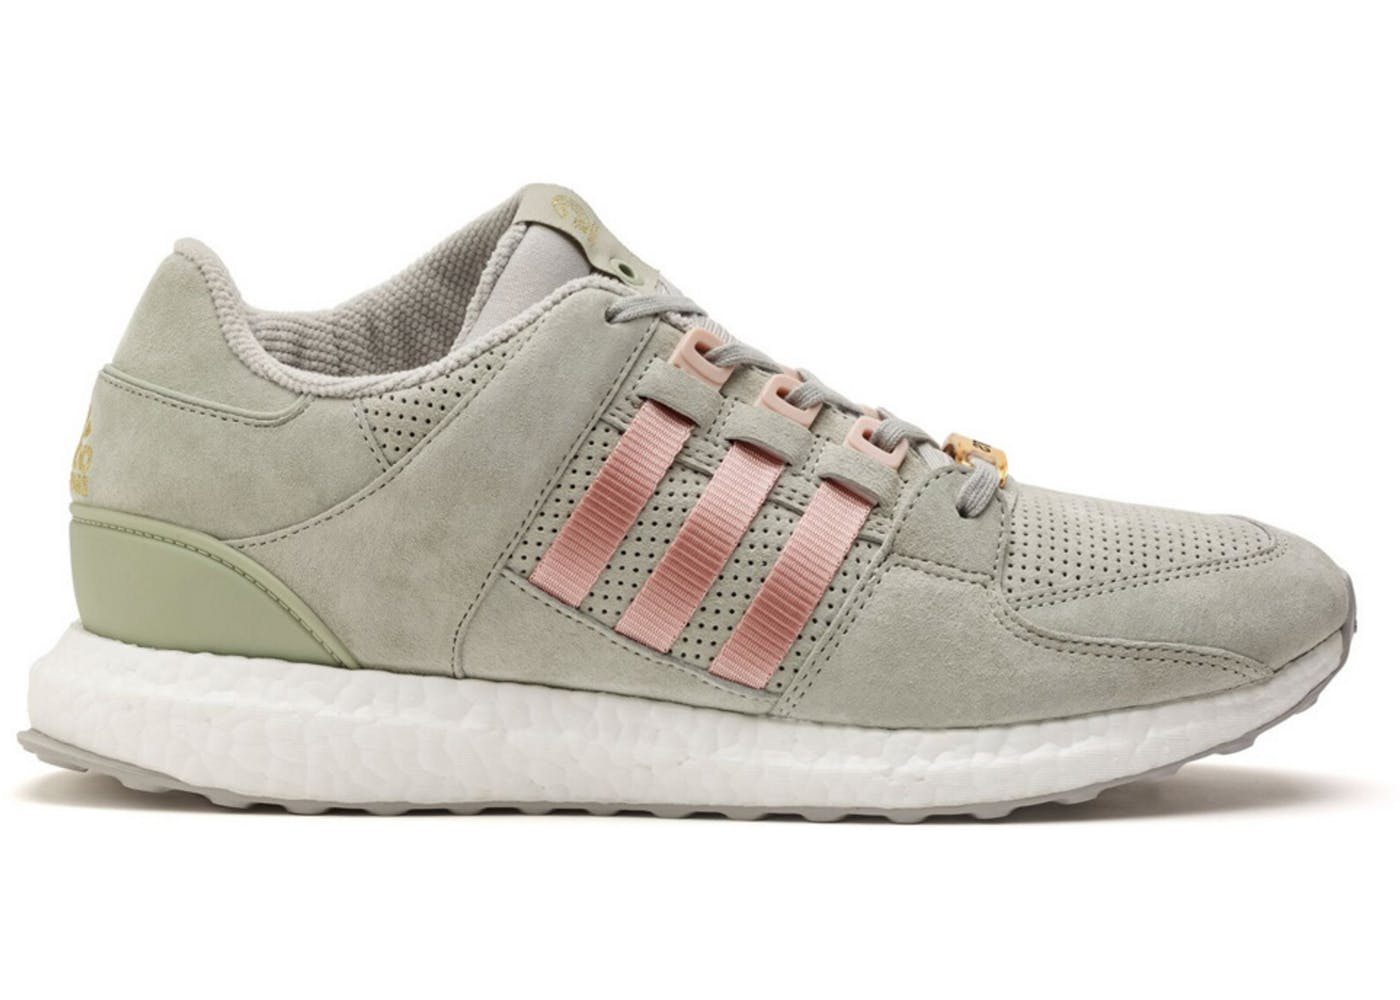 adidas EQT Support 93/17 Sneaker Urban Outfitters